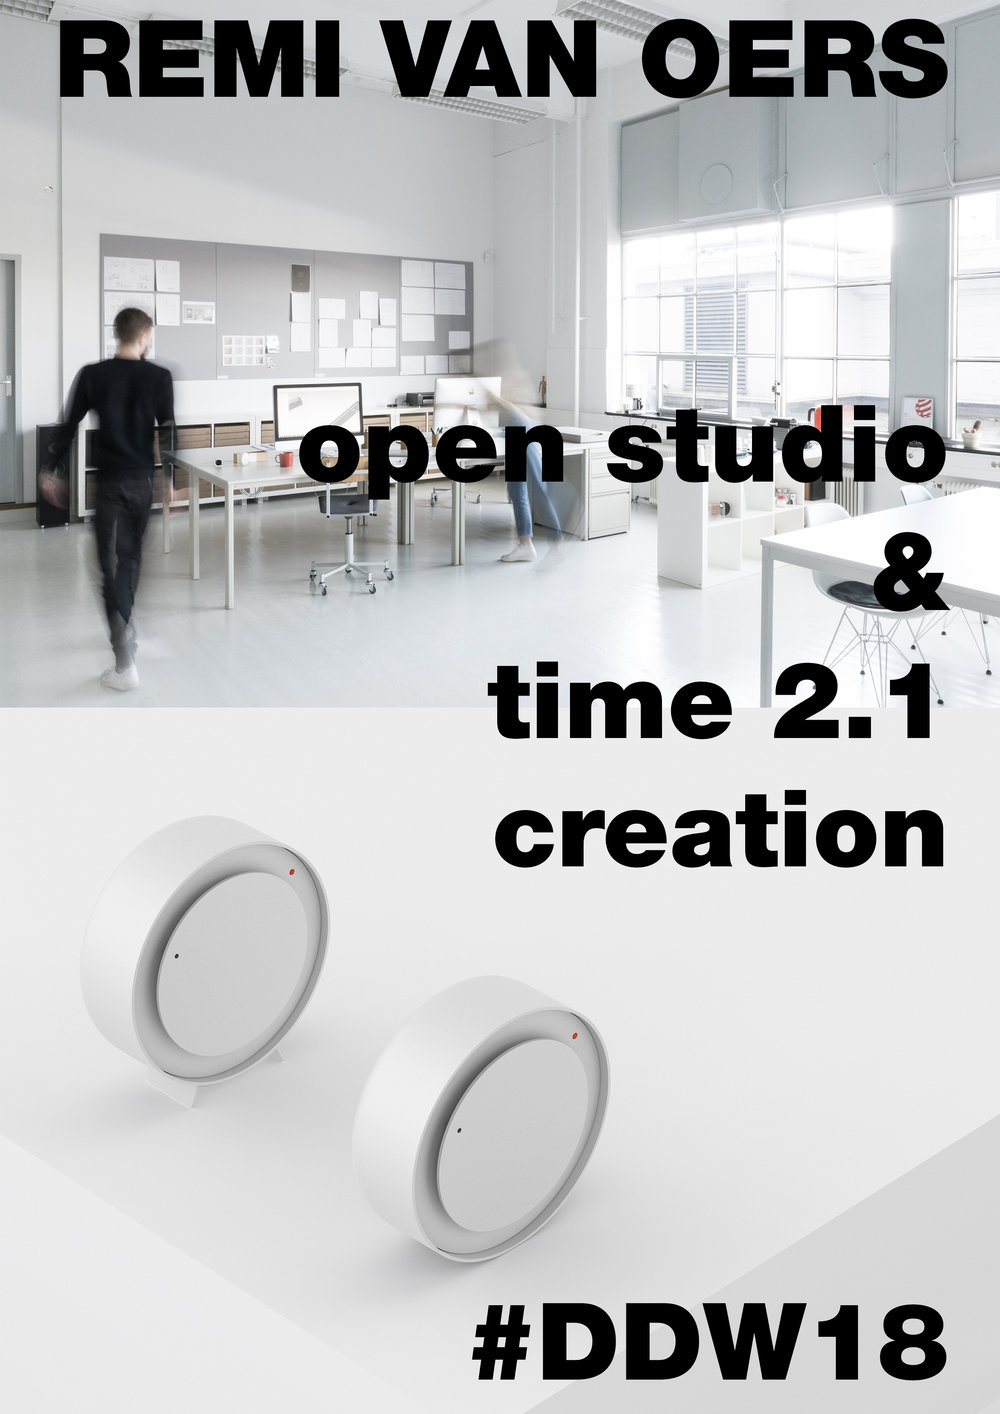 dutch design week 2018 open studio ddw18